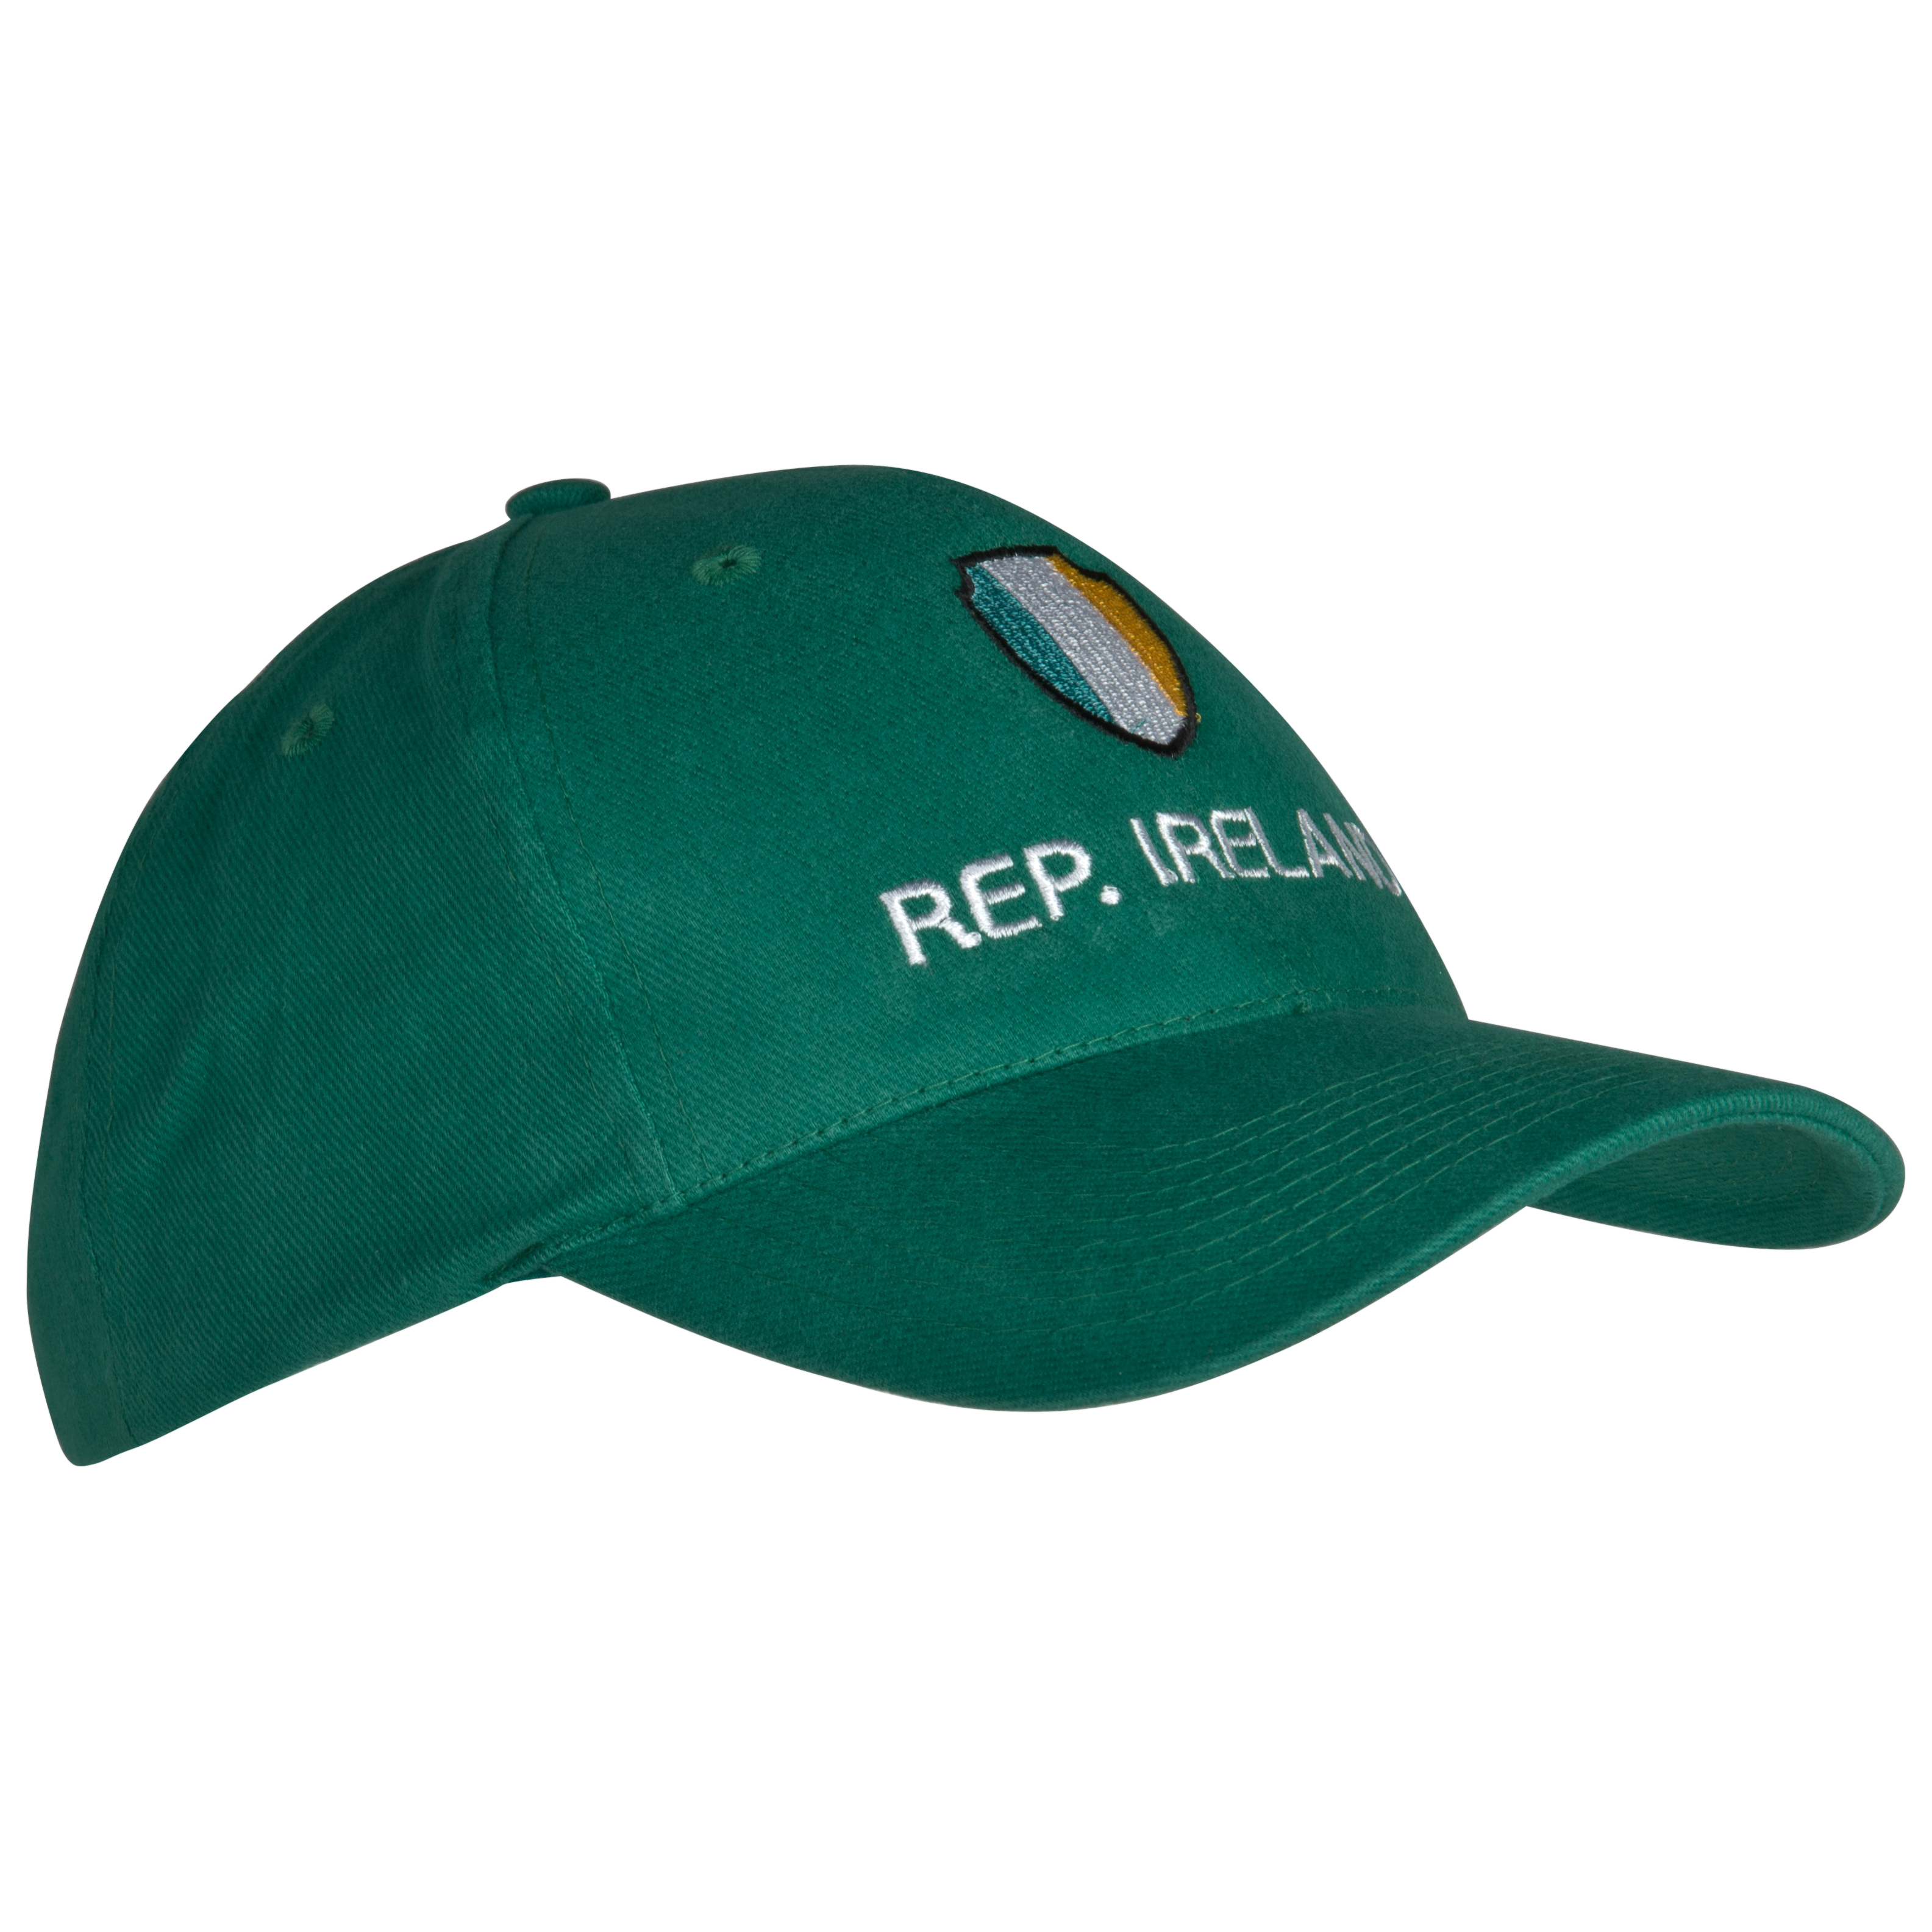 Euro 2012 Cap - Green/White